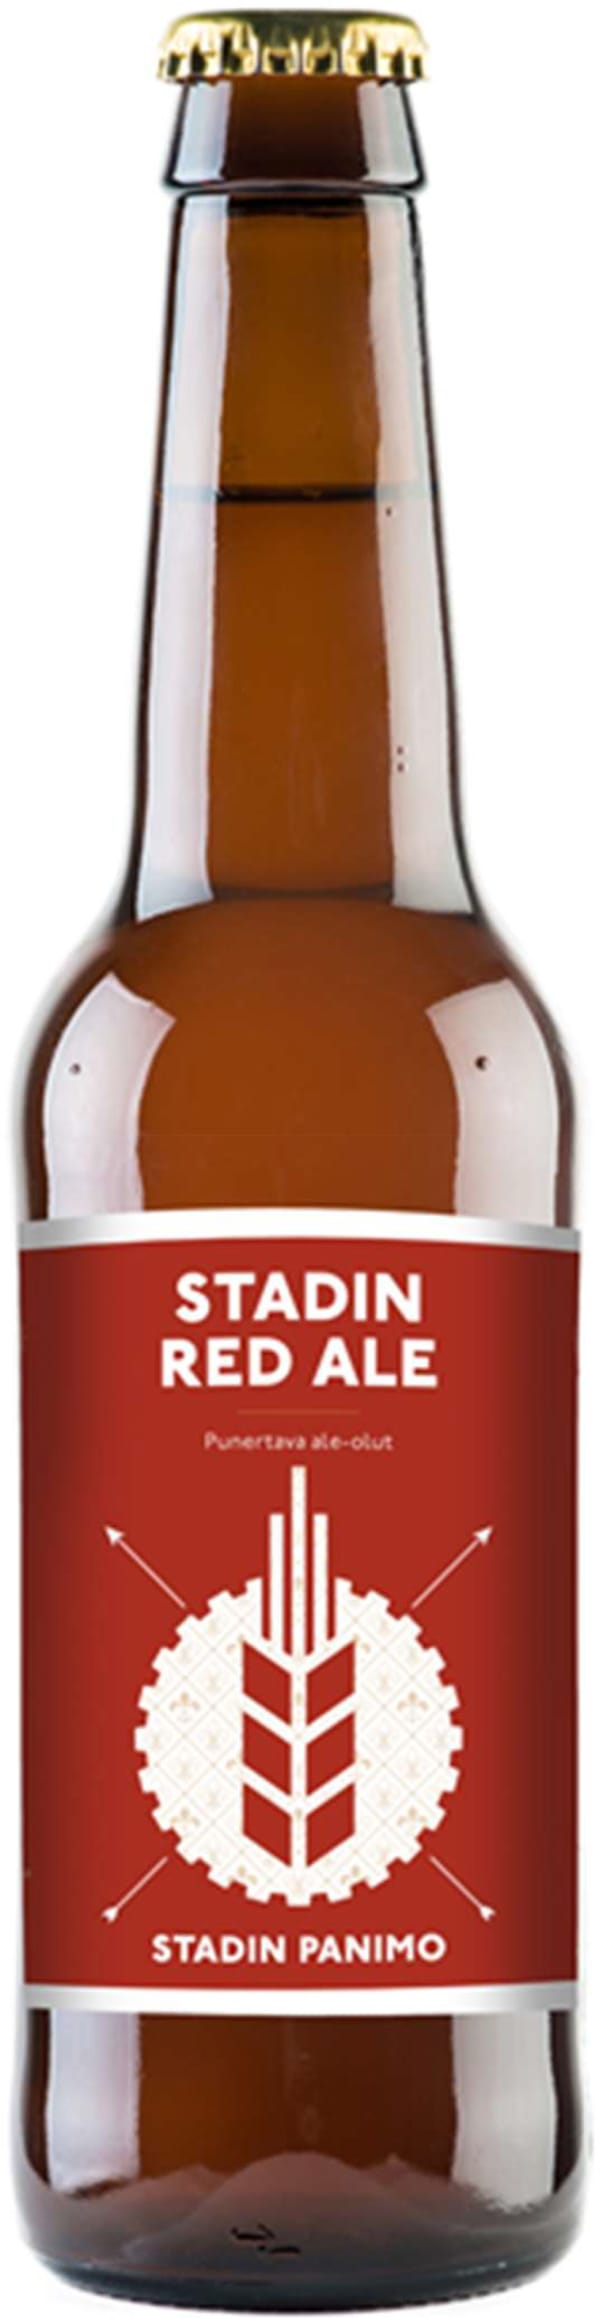 Stadin Panimo Red Ale